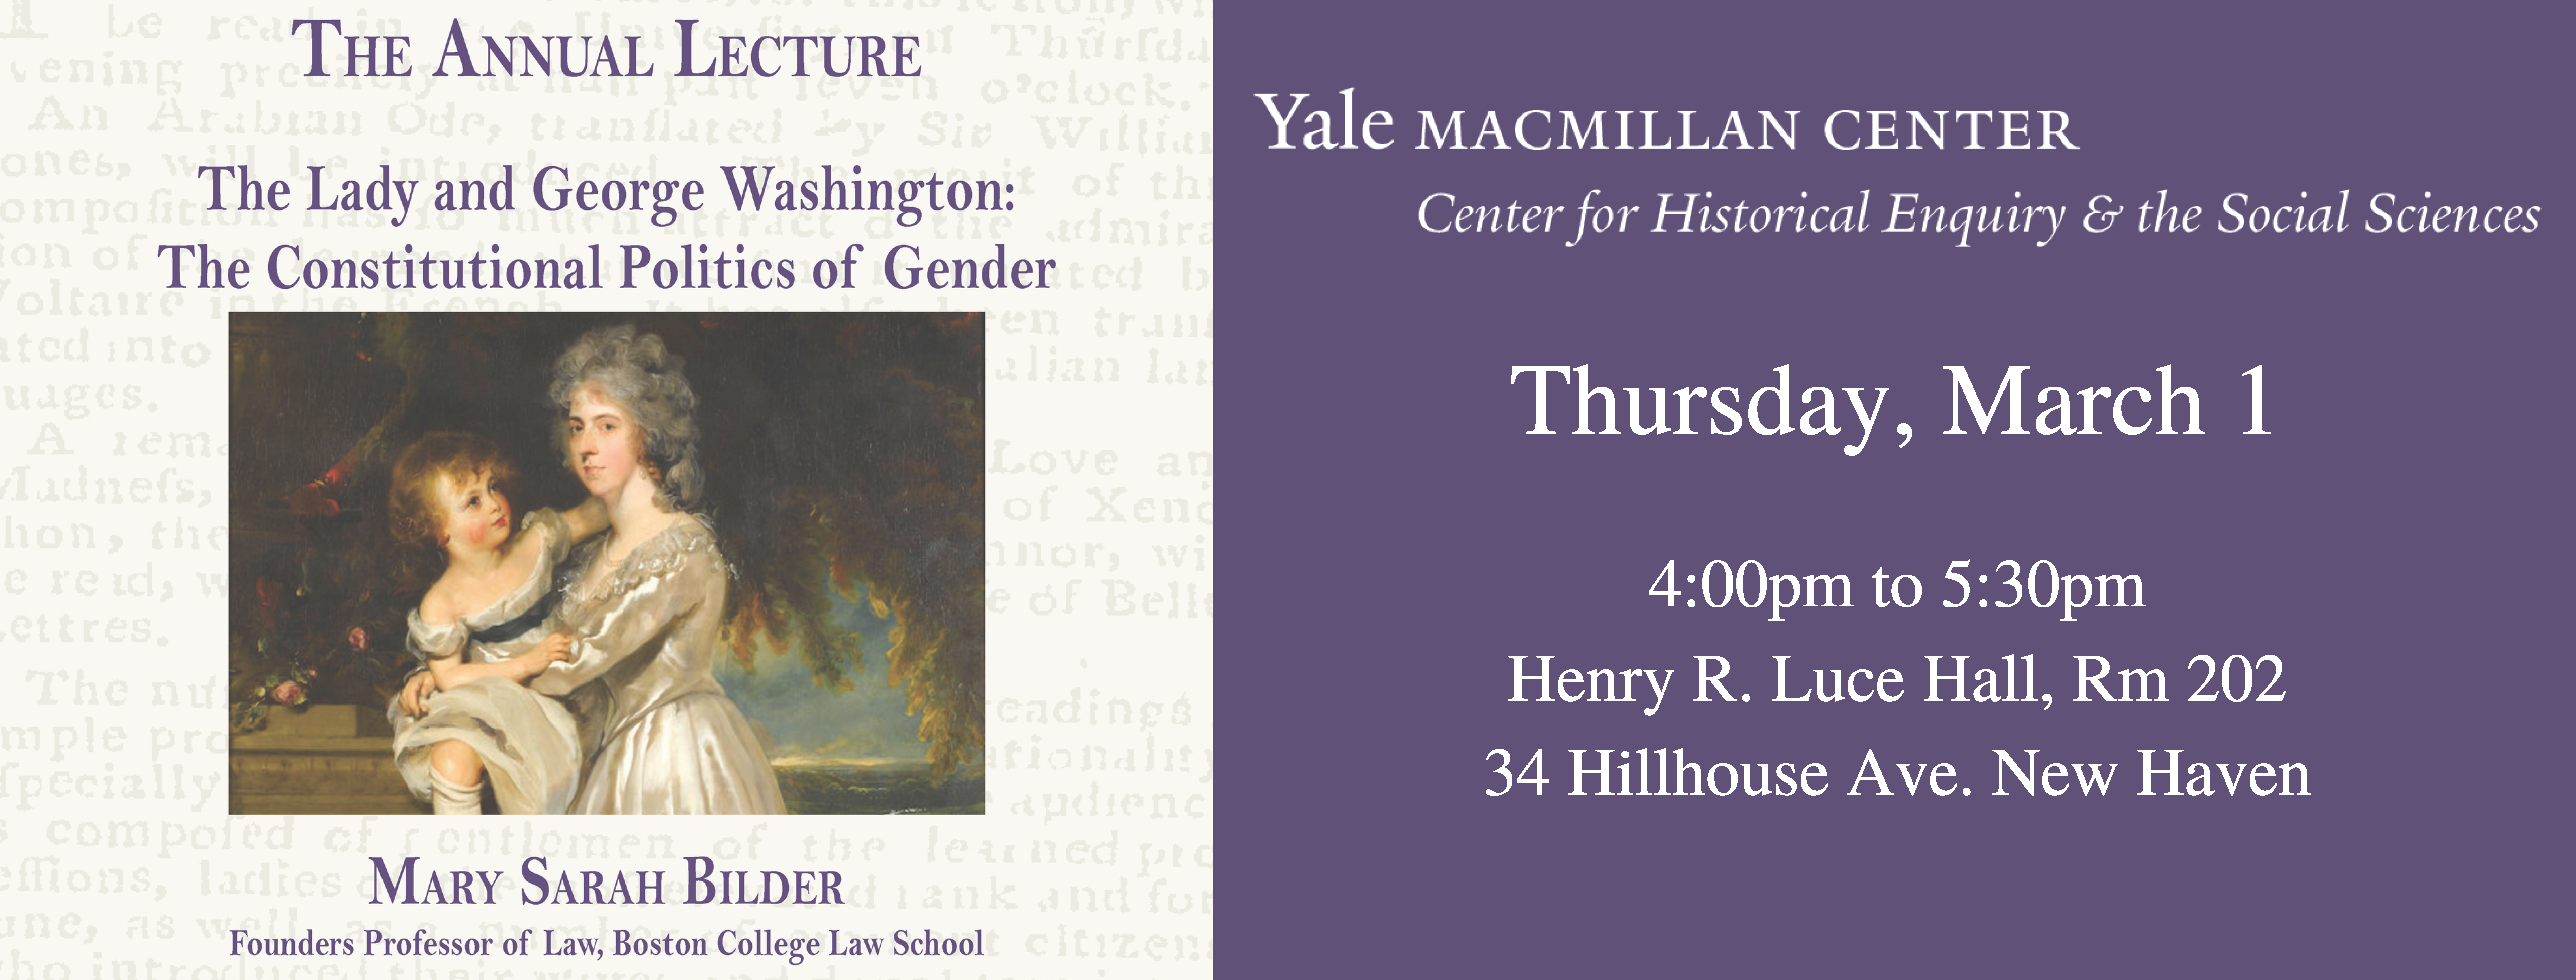 CHESS Annual Lecture - The Lady and George Washington: The Constitutional Politics of Gender, Thursday, March 1, 4:30pm to 5:30pm Henry R. Luce Hall, 34 Hillhouse Ave. New Haven